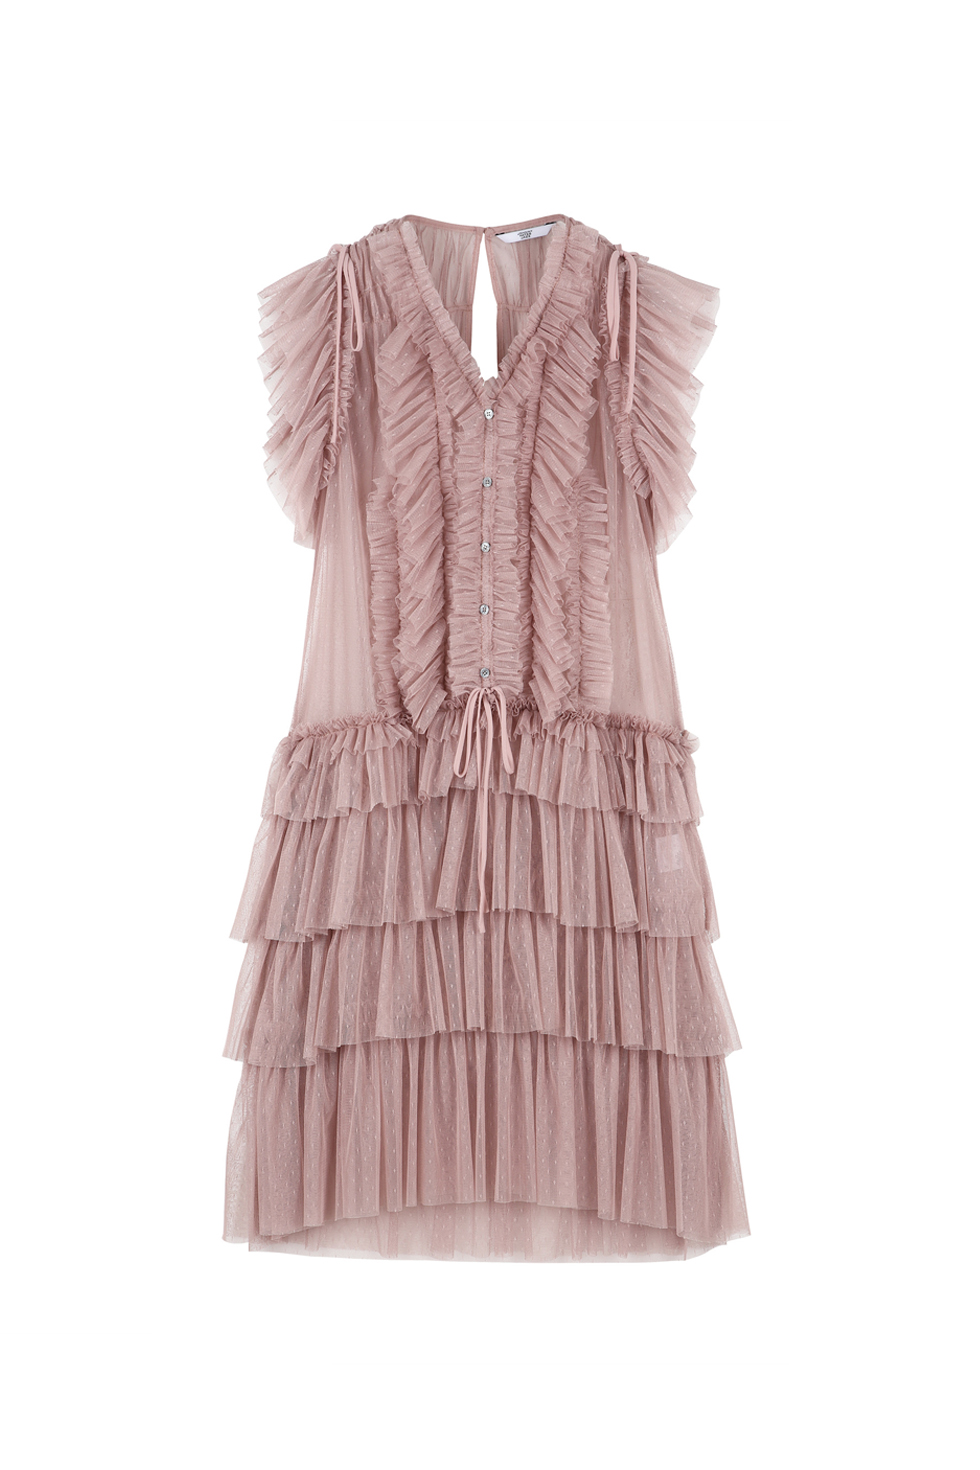 TULLED RUFFLE DRESS - PINK